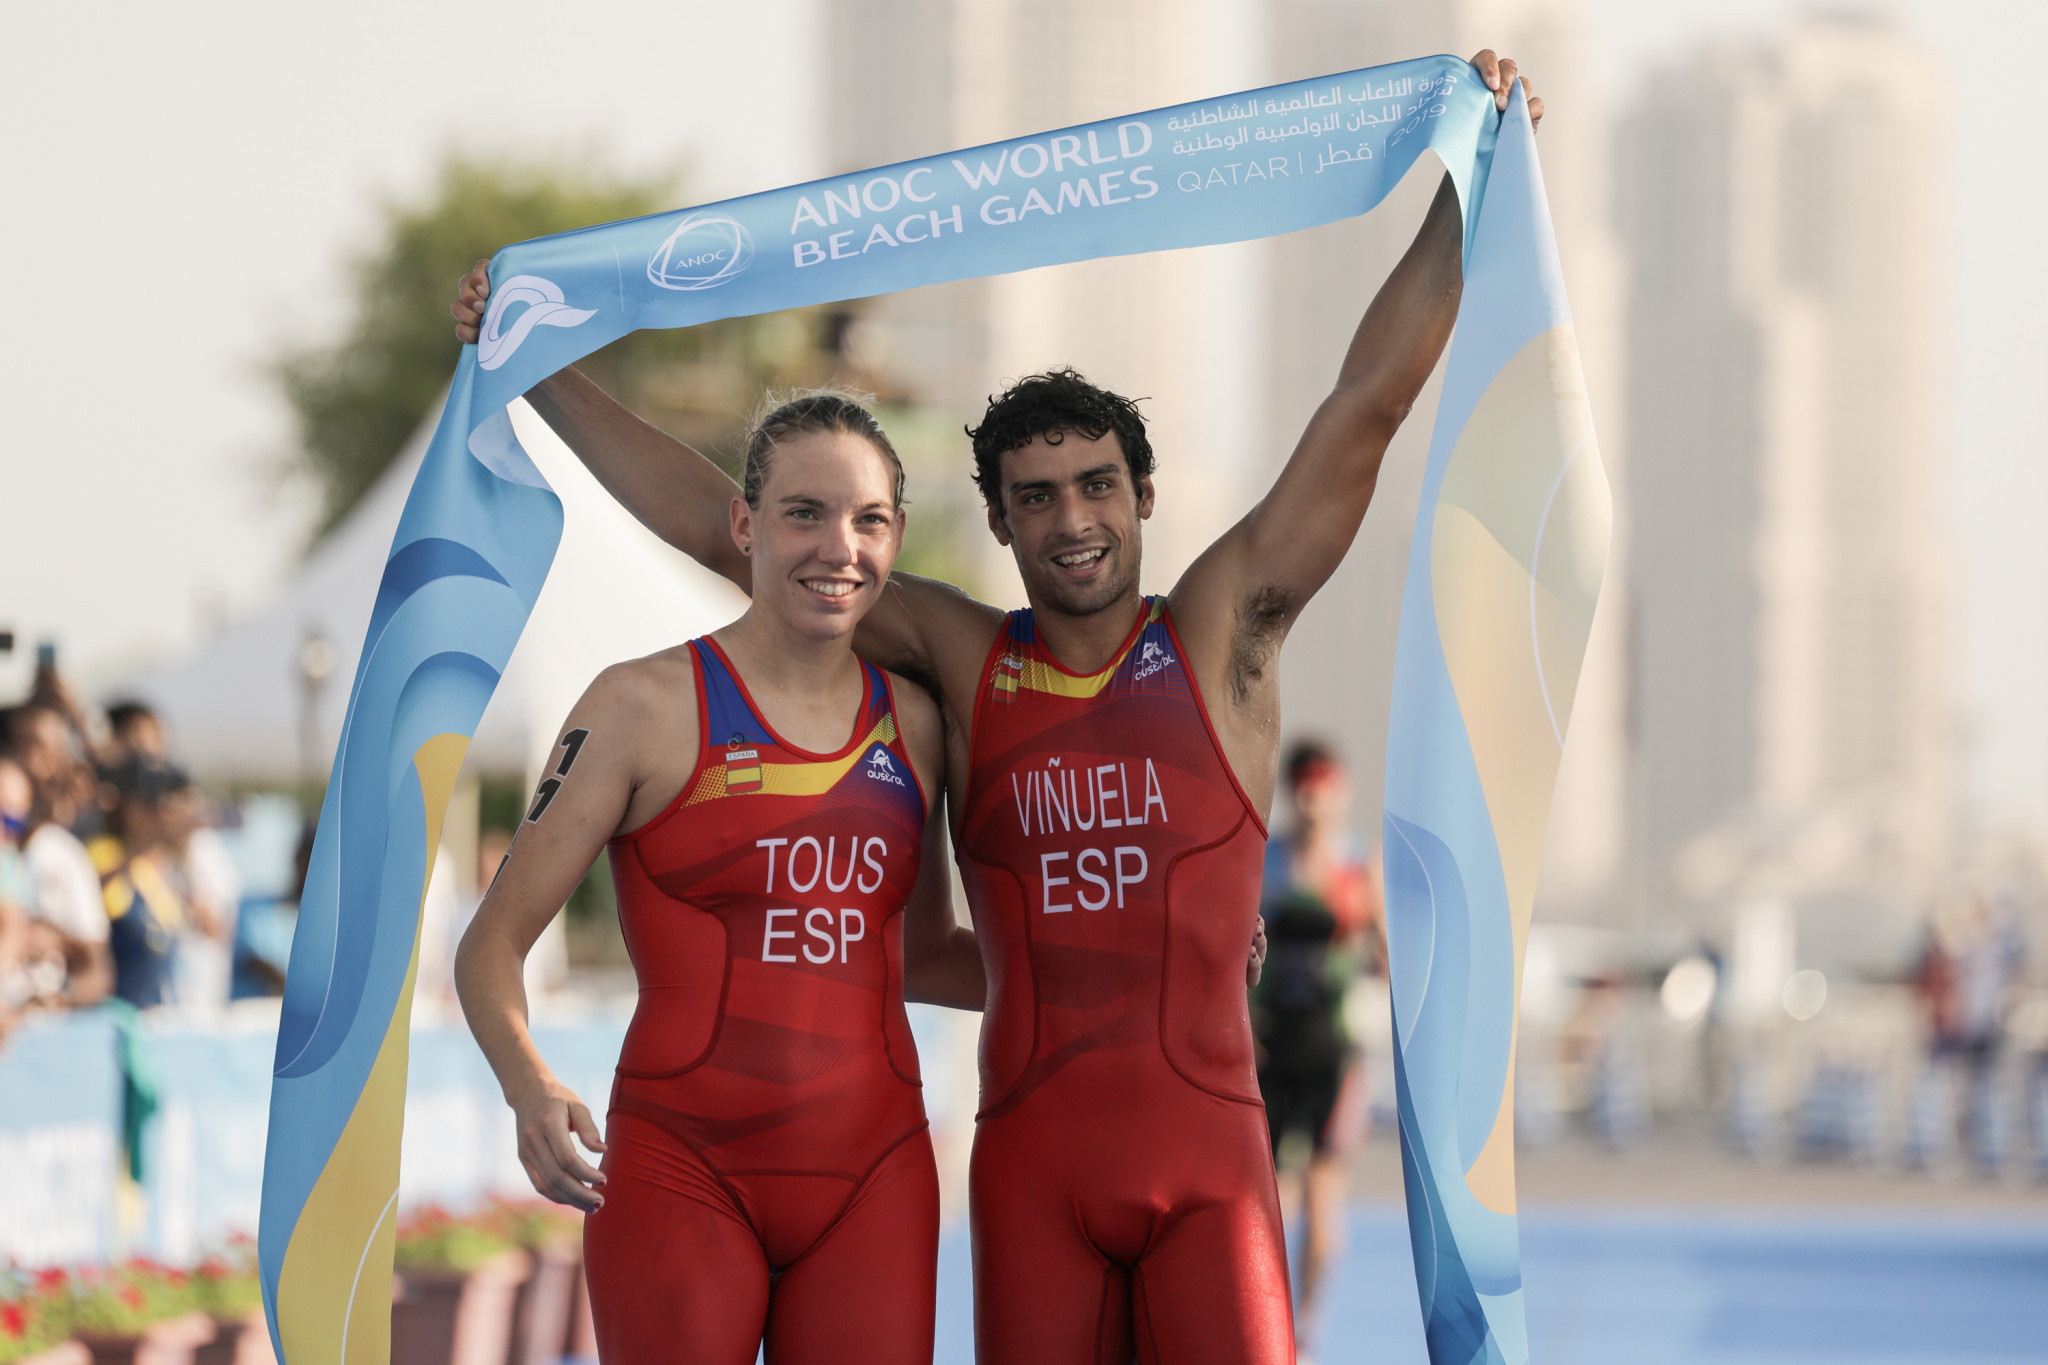 Spain add aquathlon team title to individual glory at ANOC World Beach Games